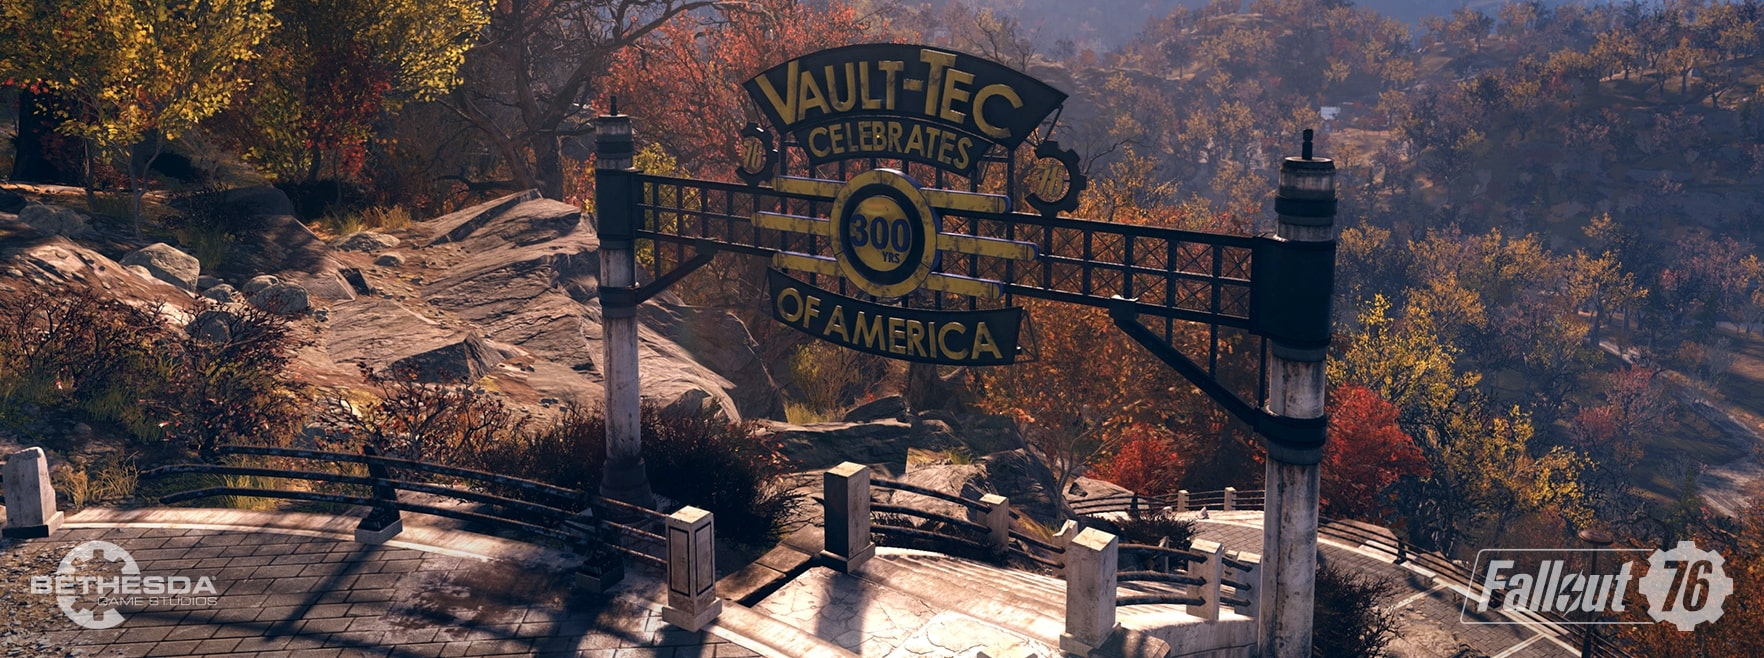 Fallout 76 Release Date and Time, How Big is the Fallout 76